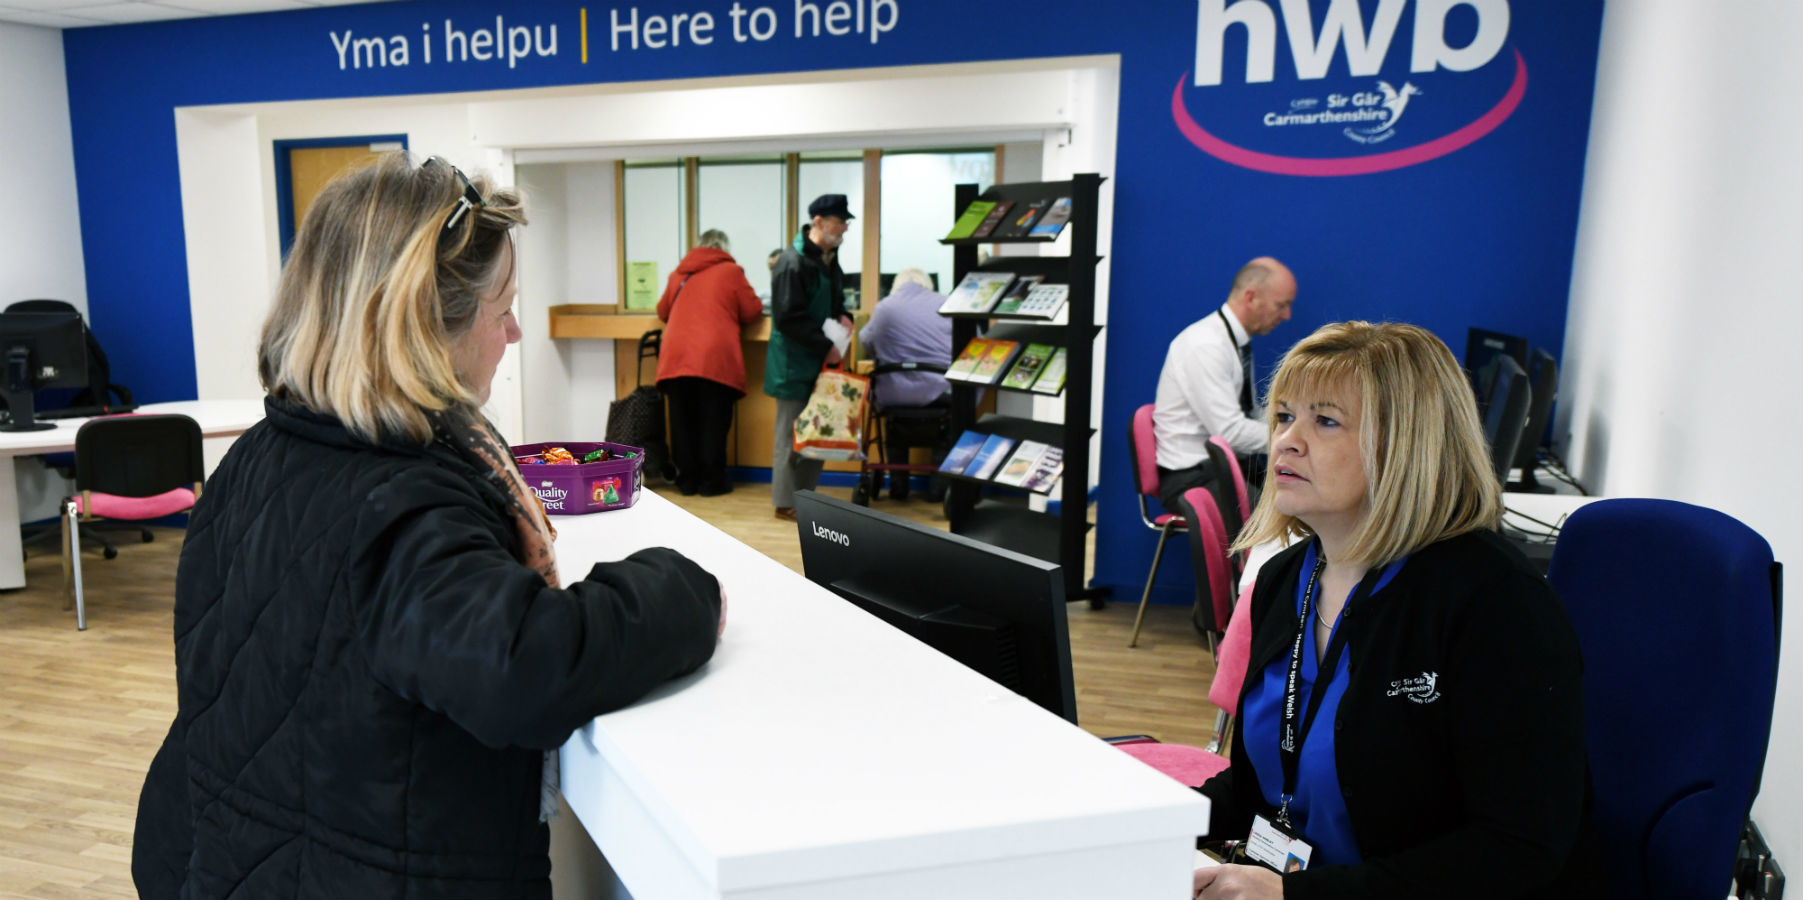 The customer service Hwb opened in Ammanford last year